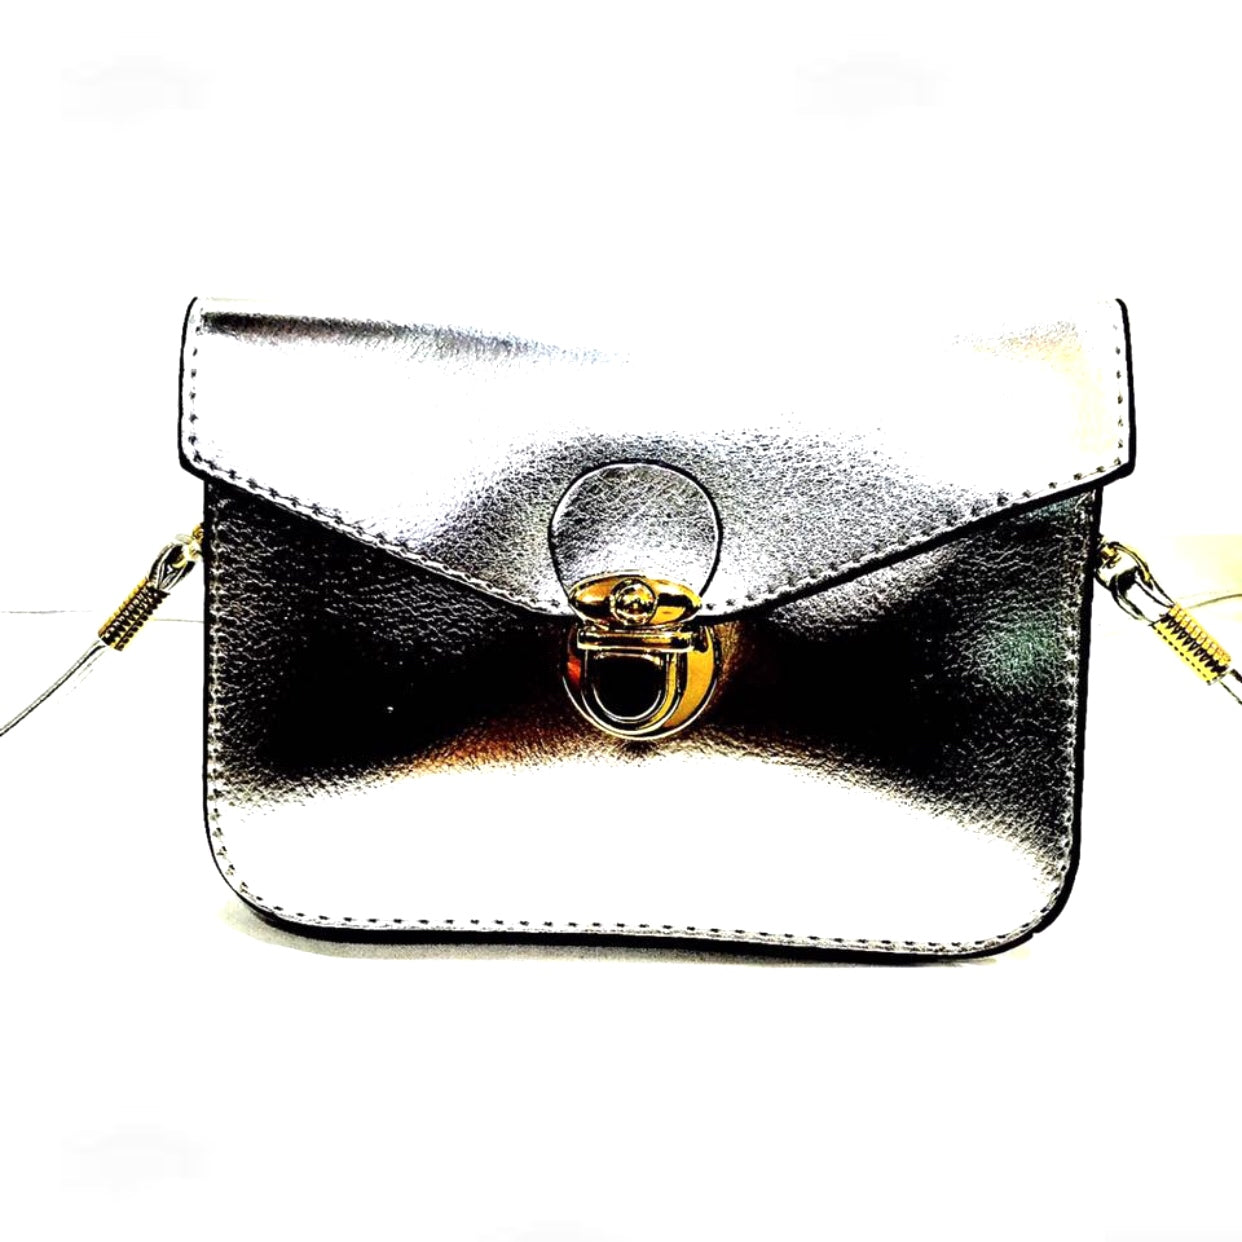 Versatile Shoulder Bag - Inspired by Chanel